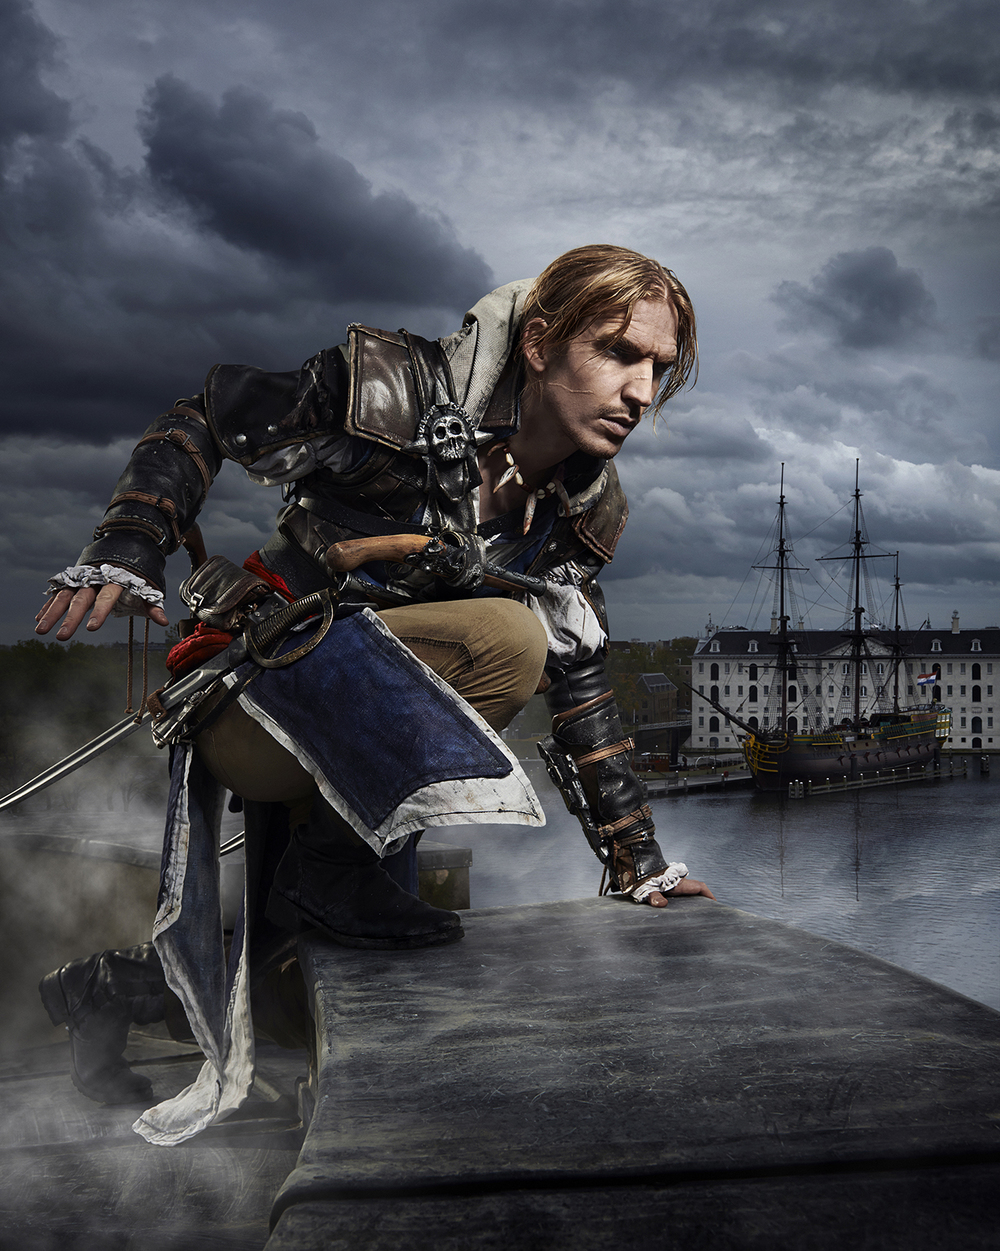 Campaign image Ubisoft | Assassin's Creed IV: Black Flag